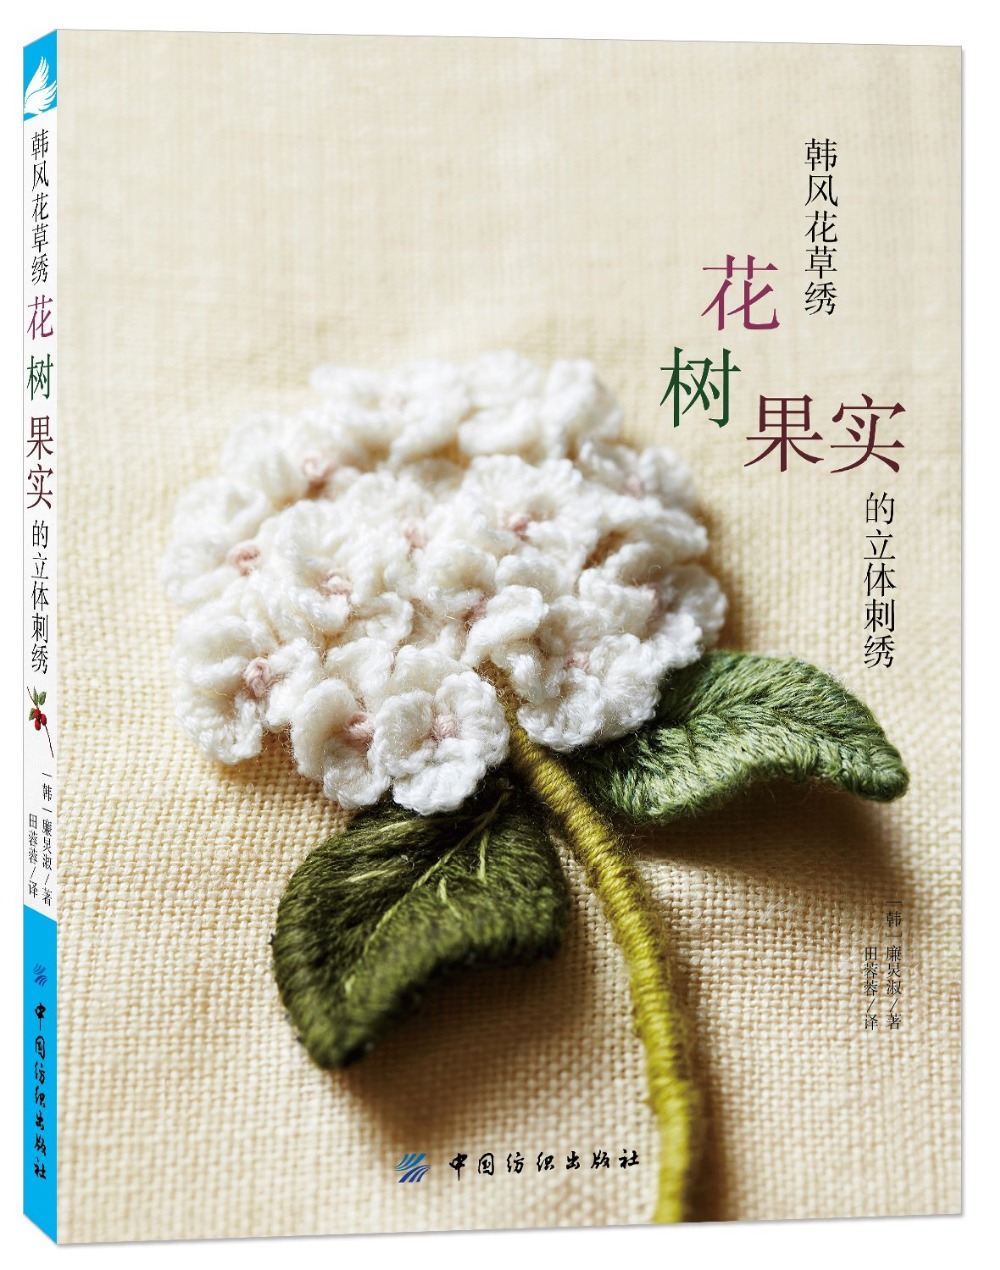 A three-dimensional embroidery of flowers, trees, and fruits / Chinese embroidery Handmade Art Design Book 100 super cute little embroidery chinese embroidery handmade art design book